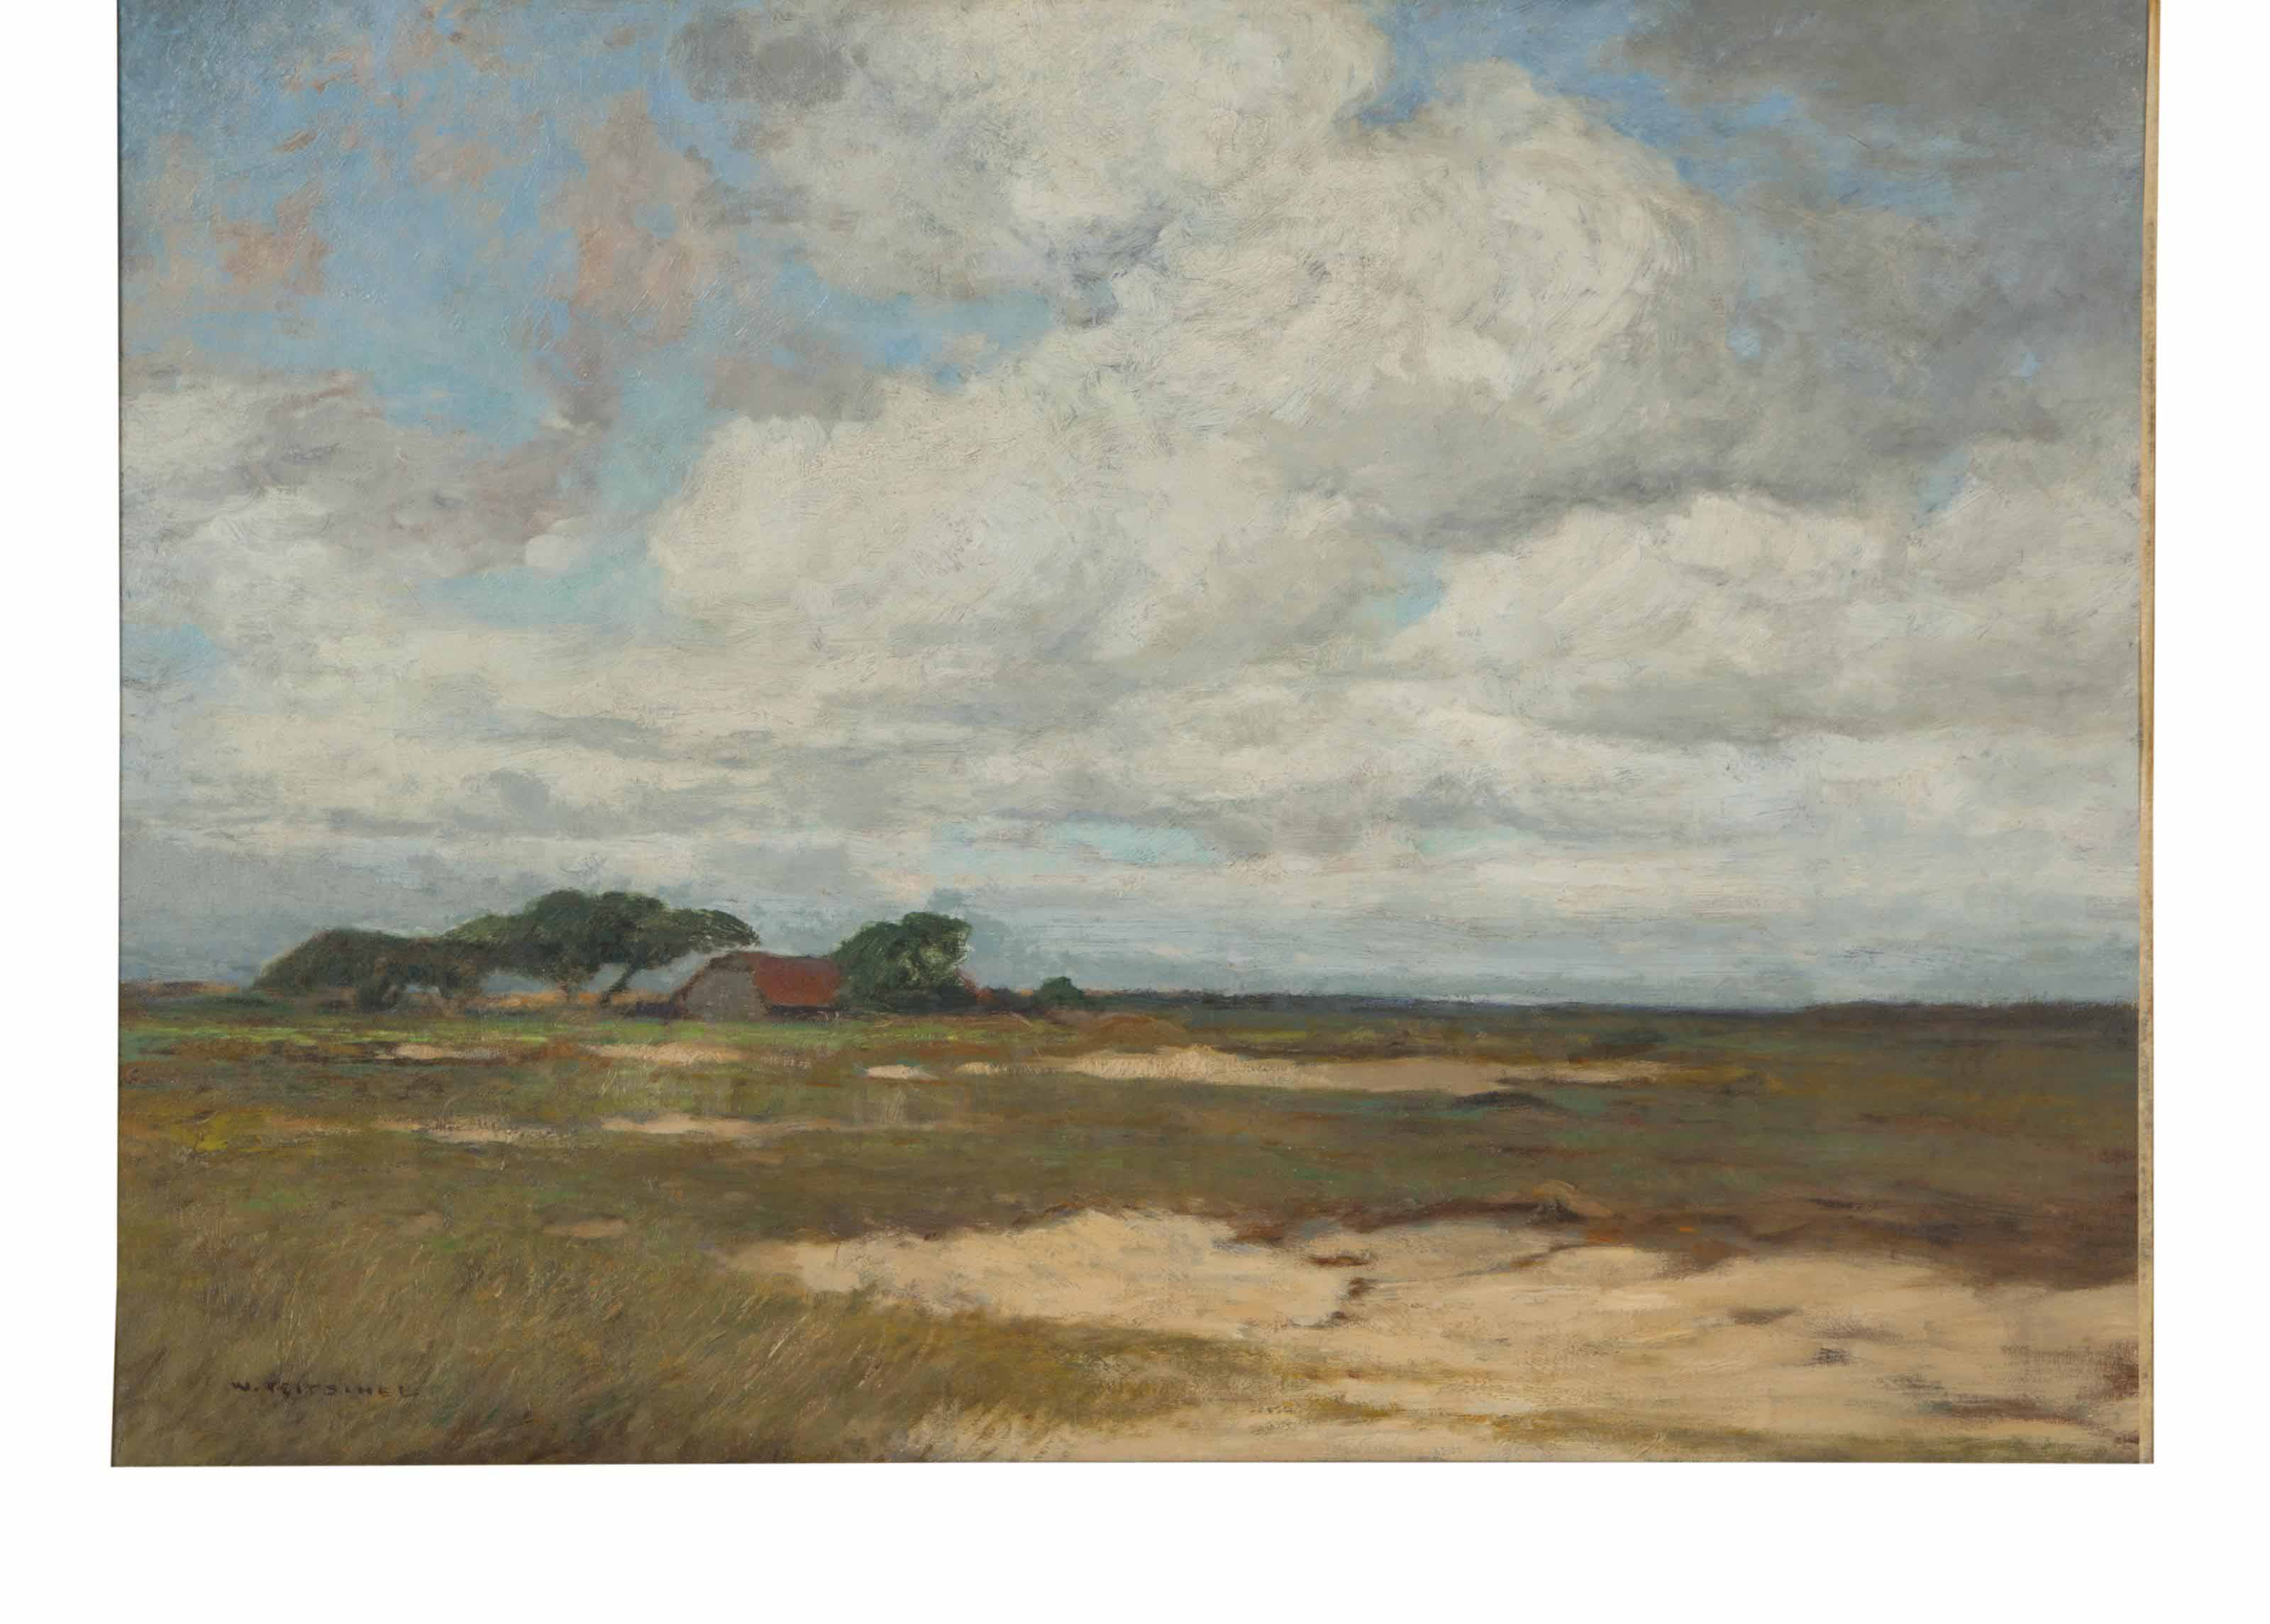 Landscape with barn in the distance